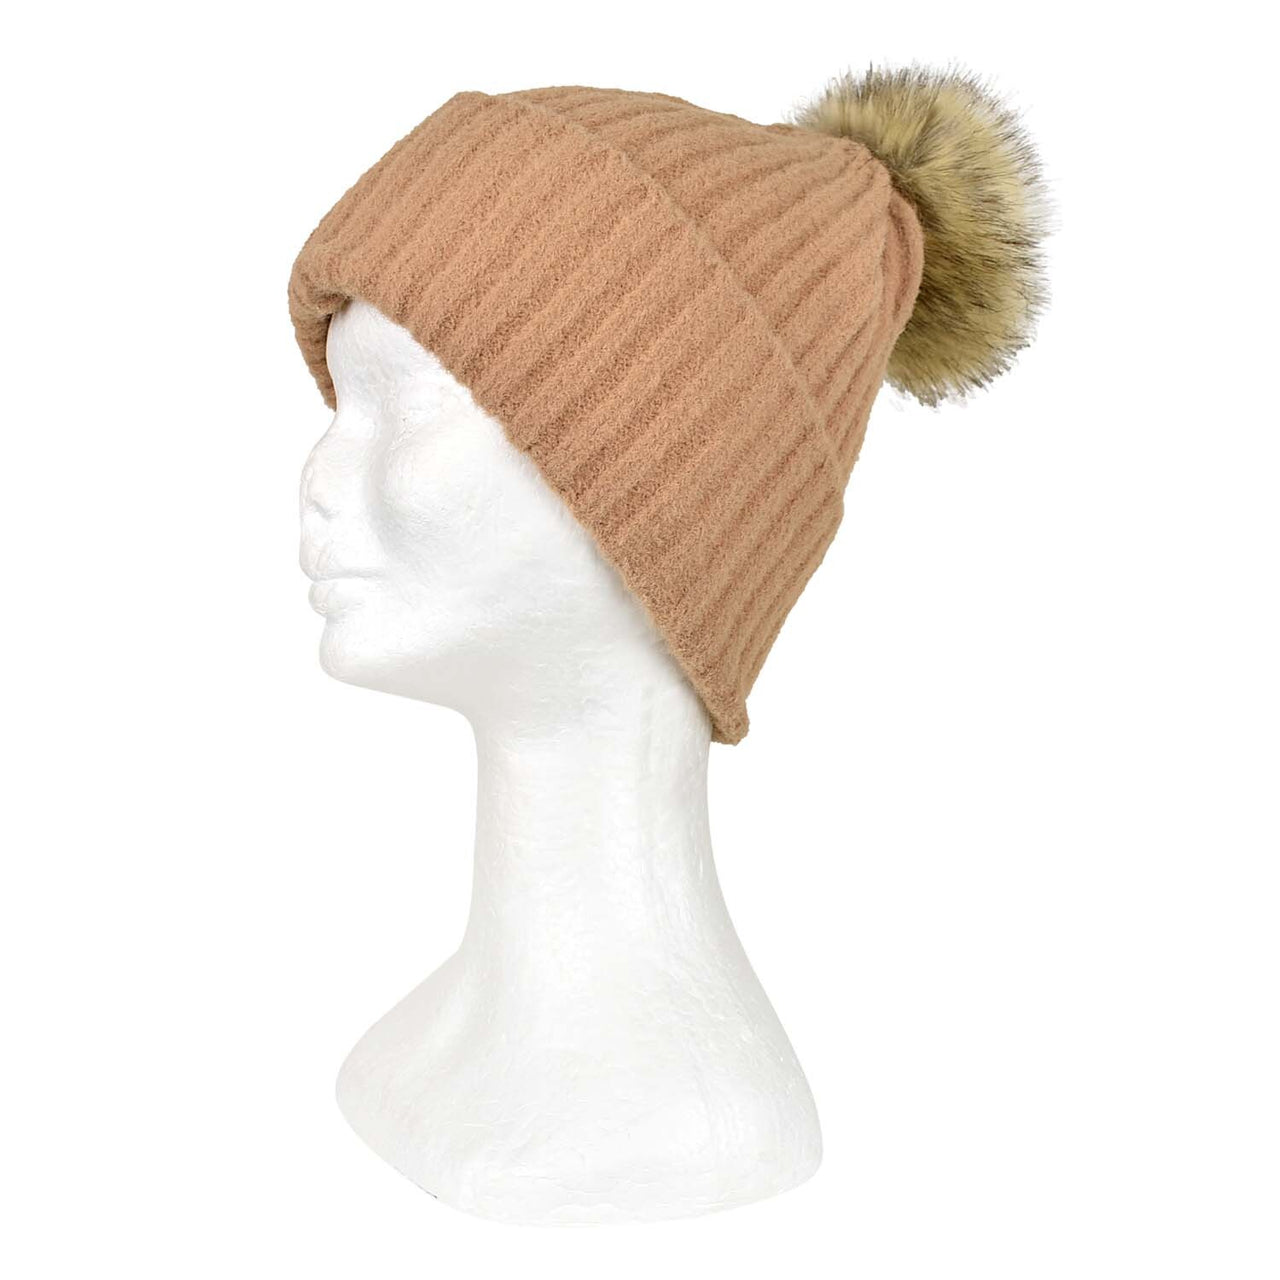 Taylor Hill Plain Stripe Knit Beanie - Camel